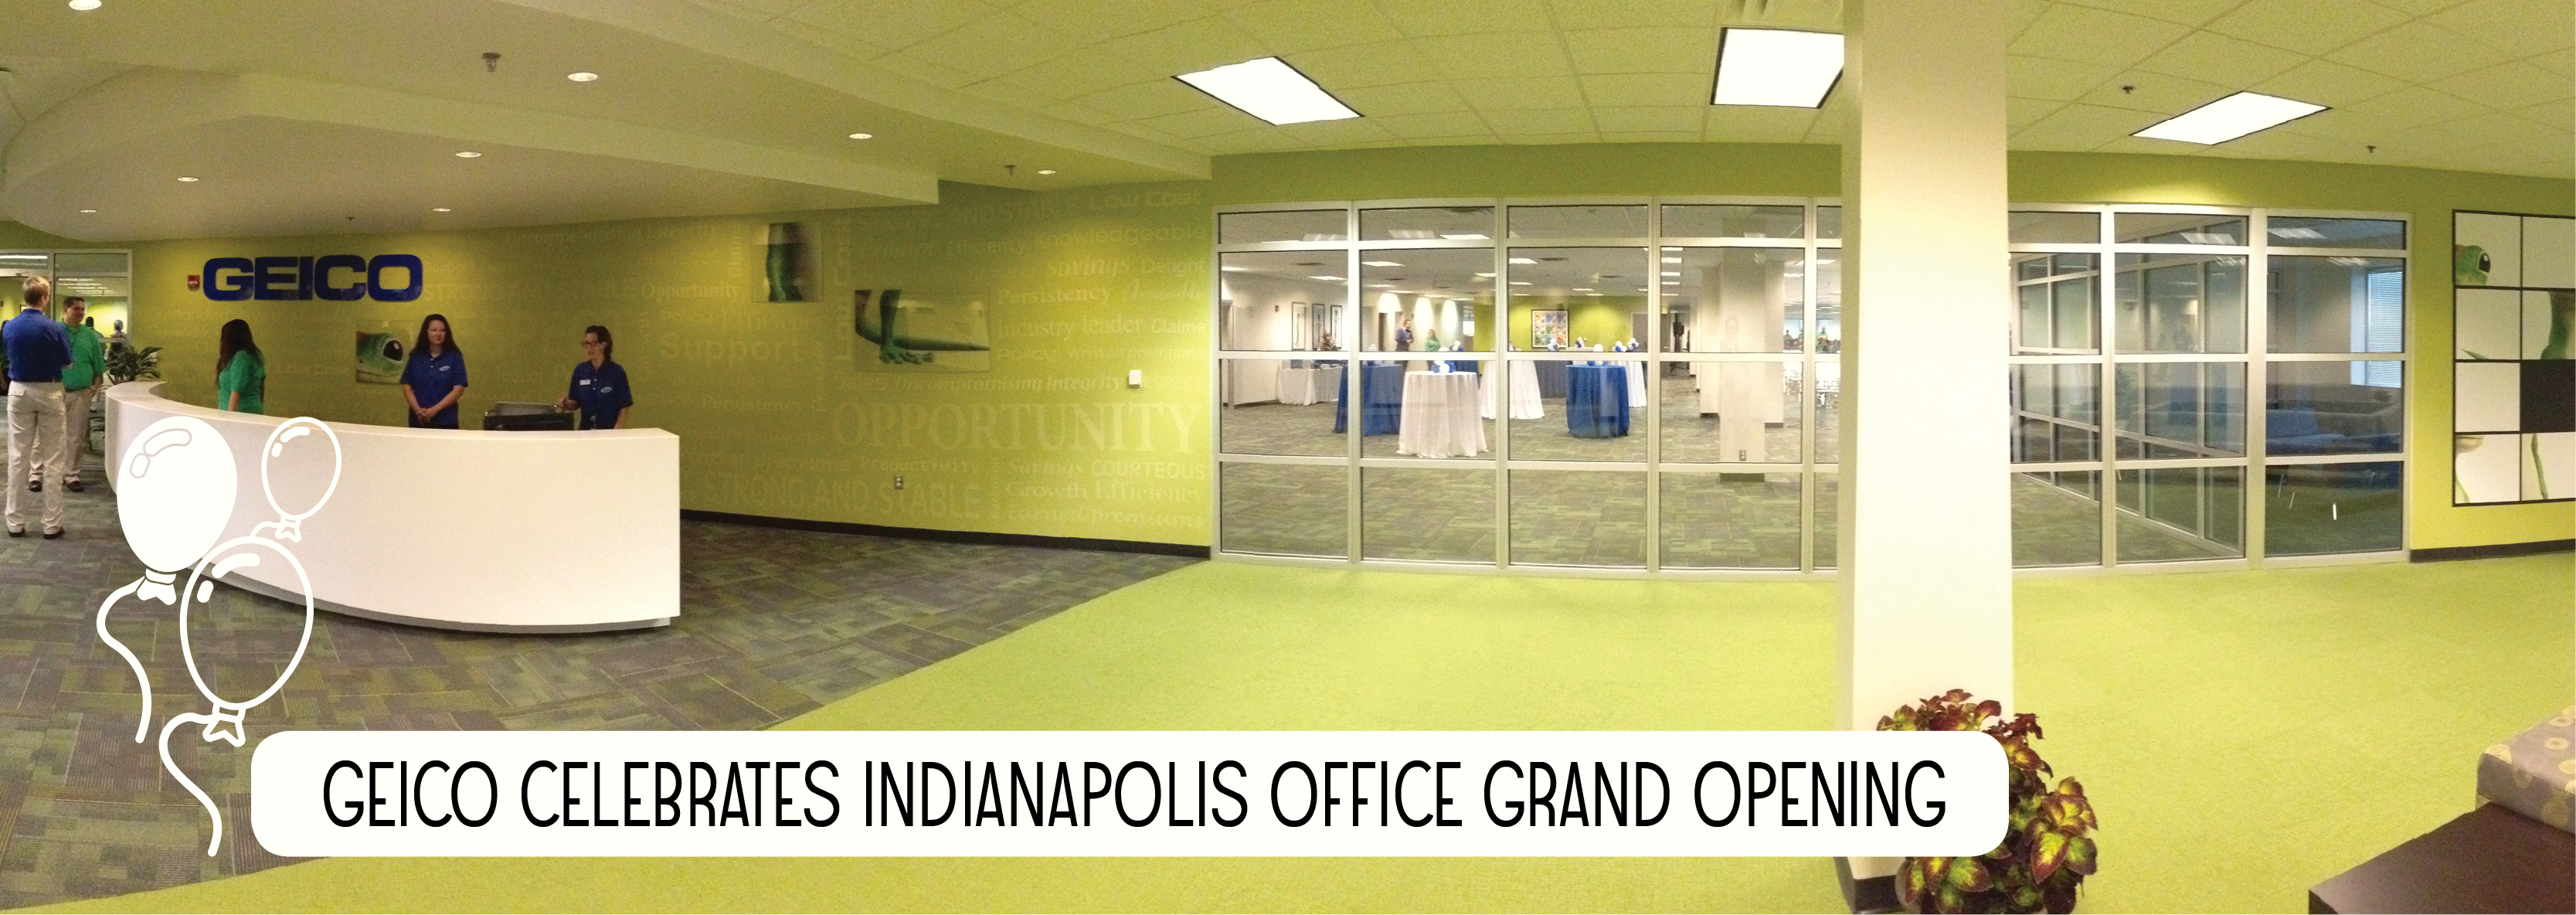 GEICO Celebrates Indianapolis Office Grand Opening | ...to the Point